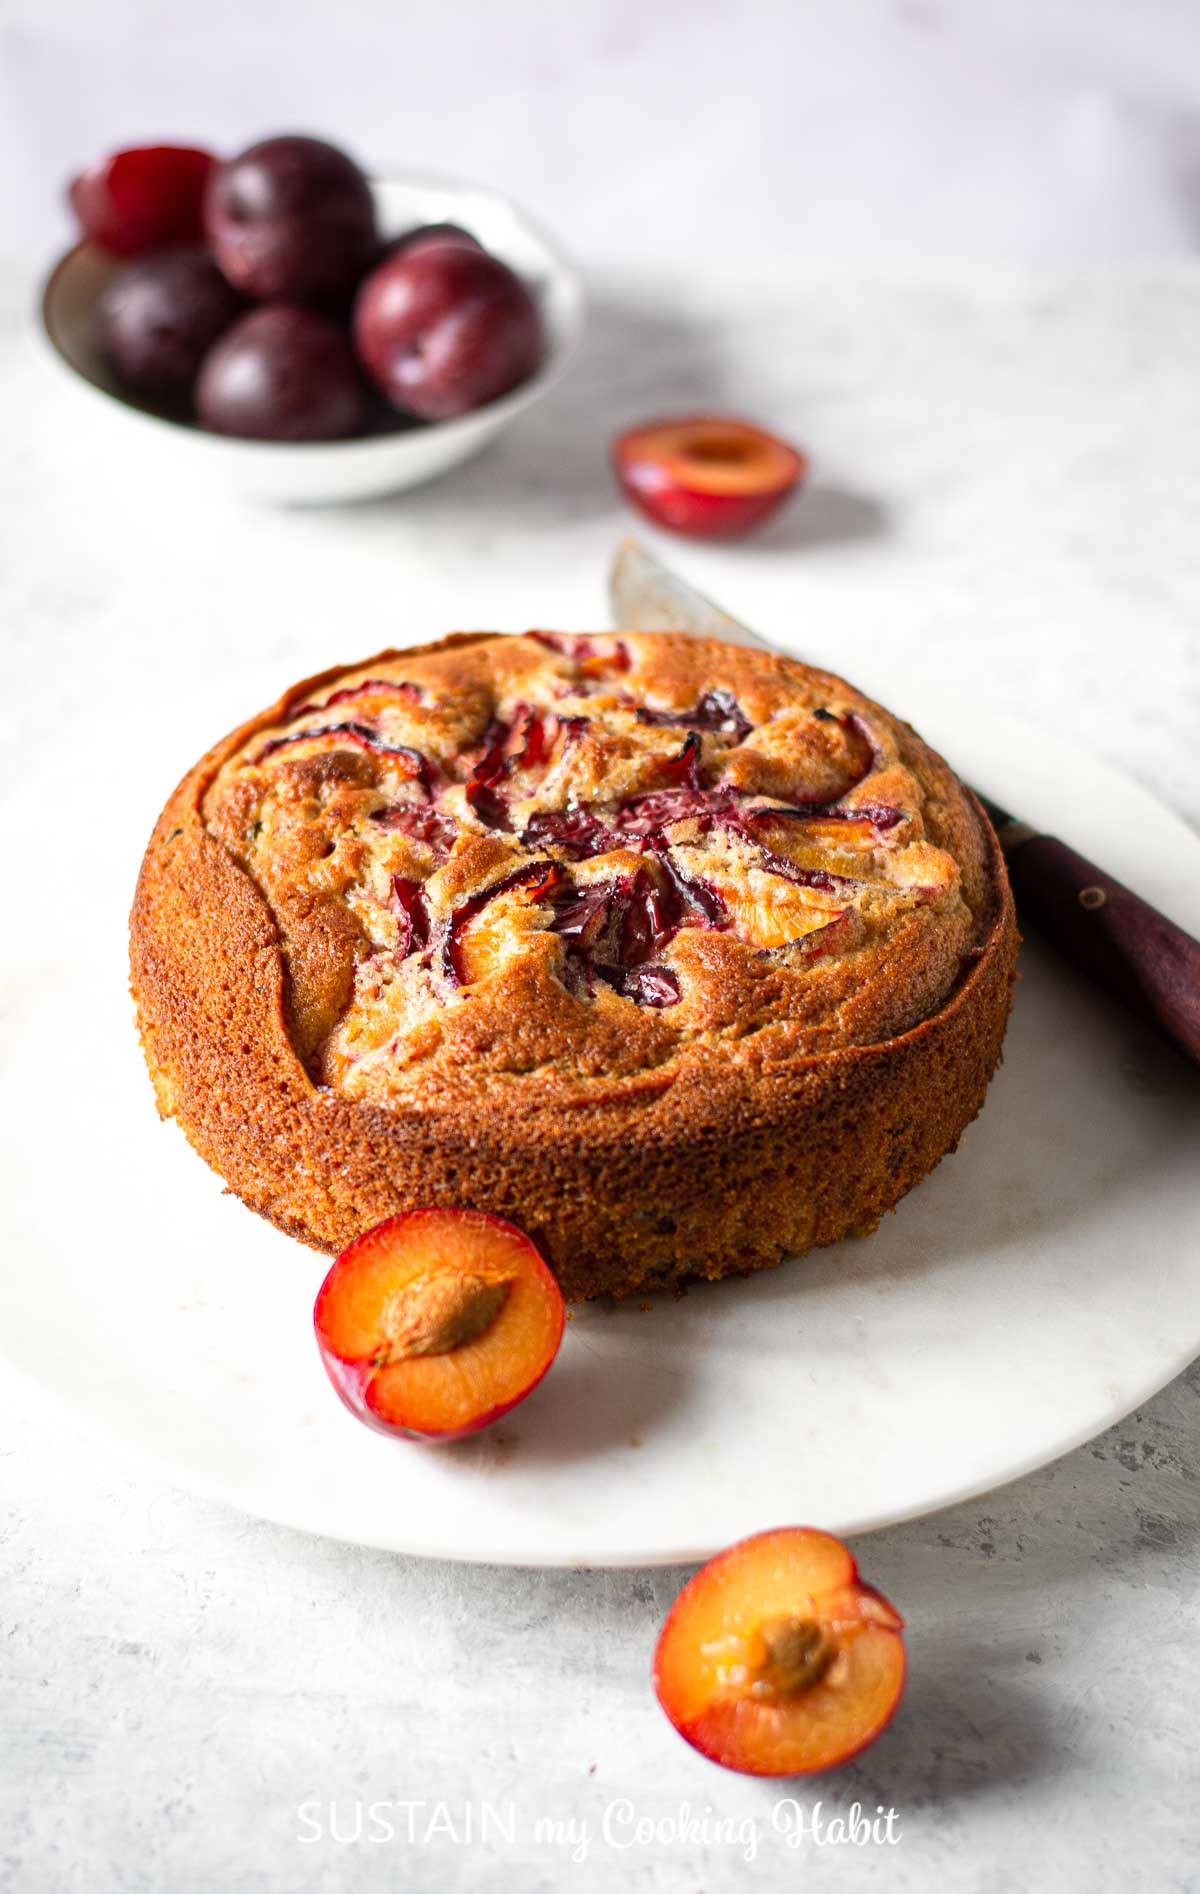 Finished classic plum cake on a plate with fresh plums placed around the plate.